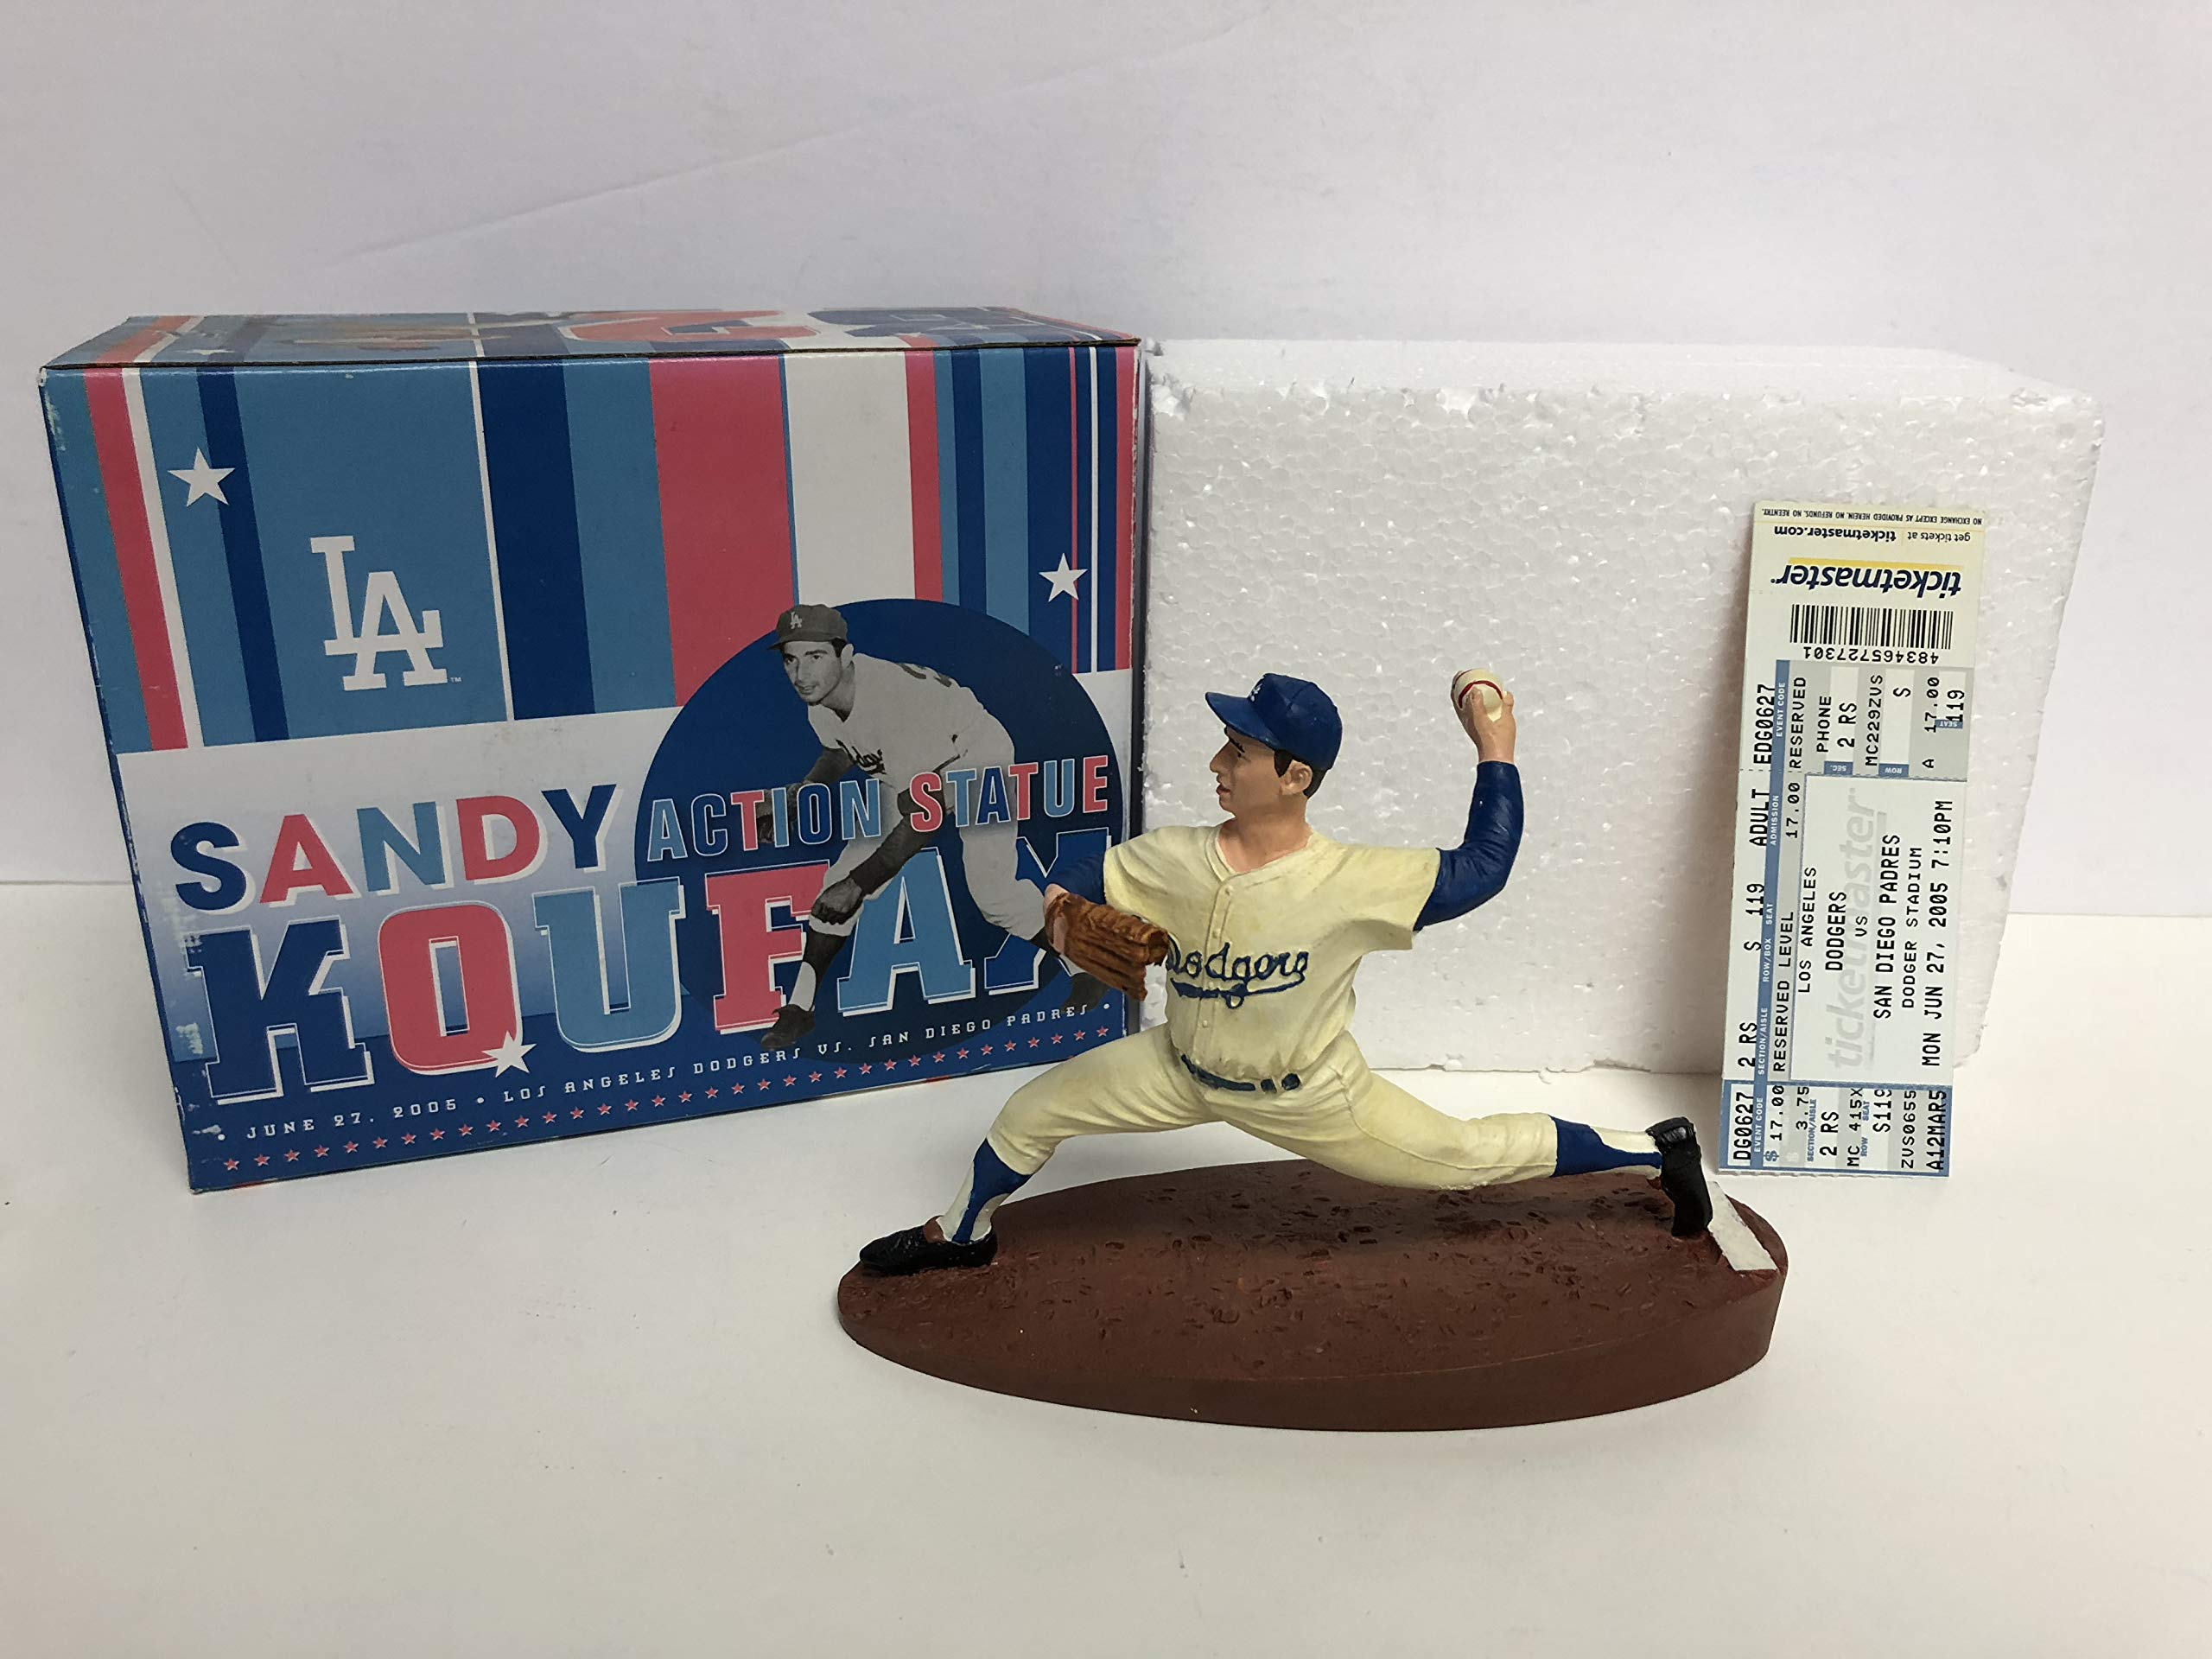 Sandy Koufax 2005 Los Angeles Dodgers Statue Figurine SGA with Game Ticket Stub